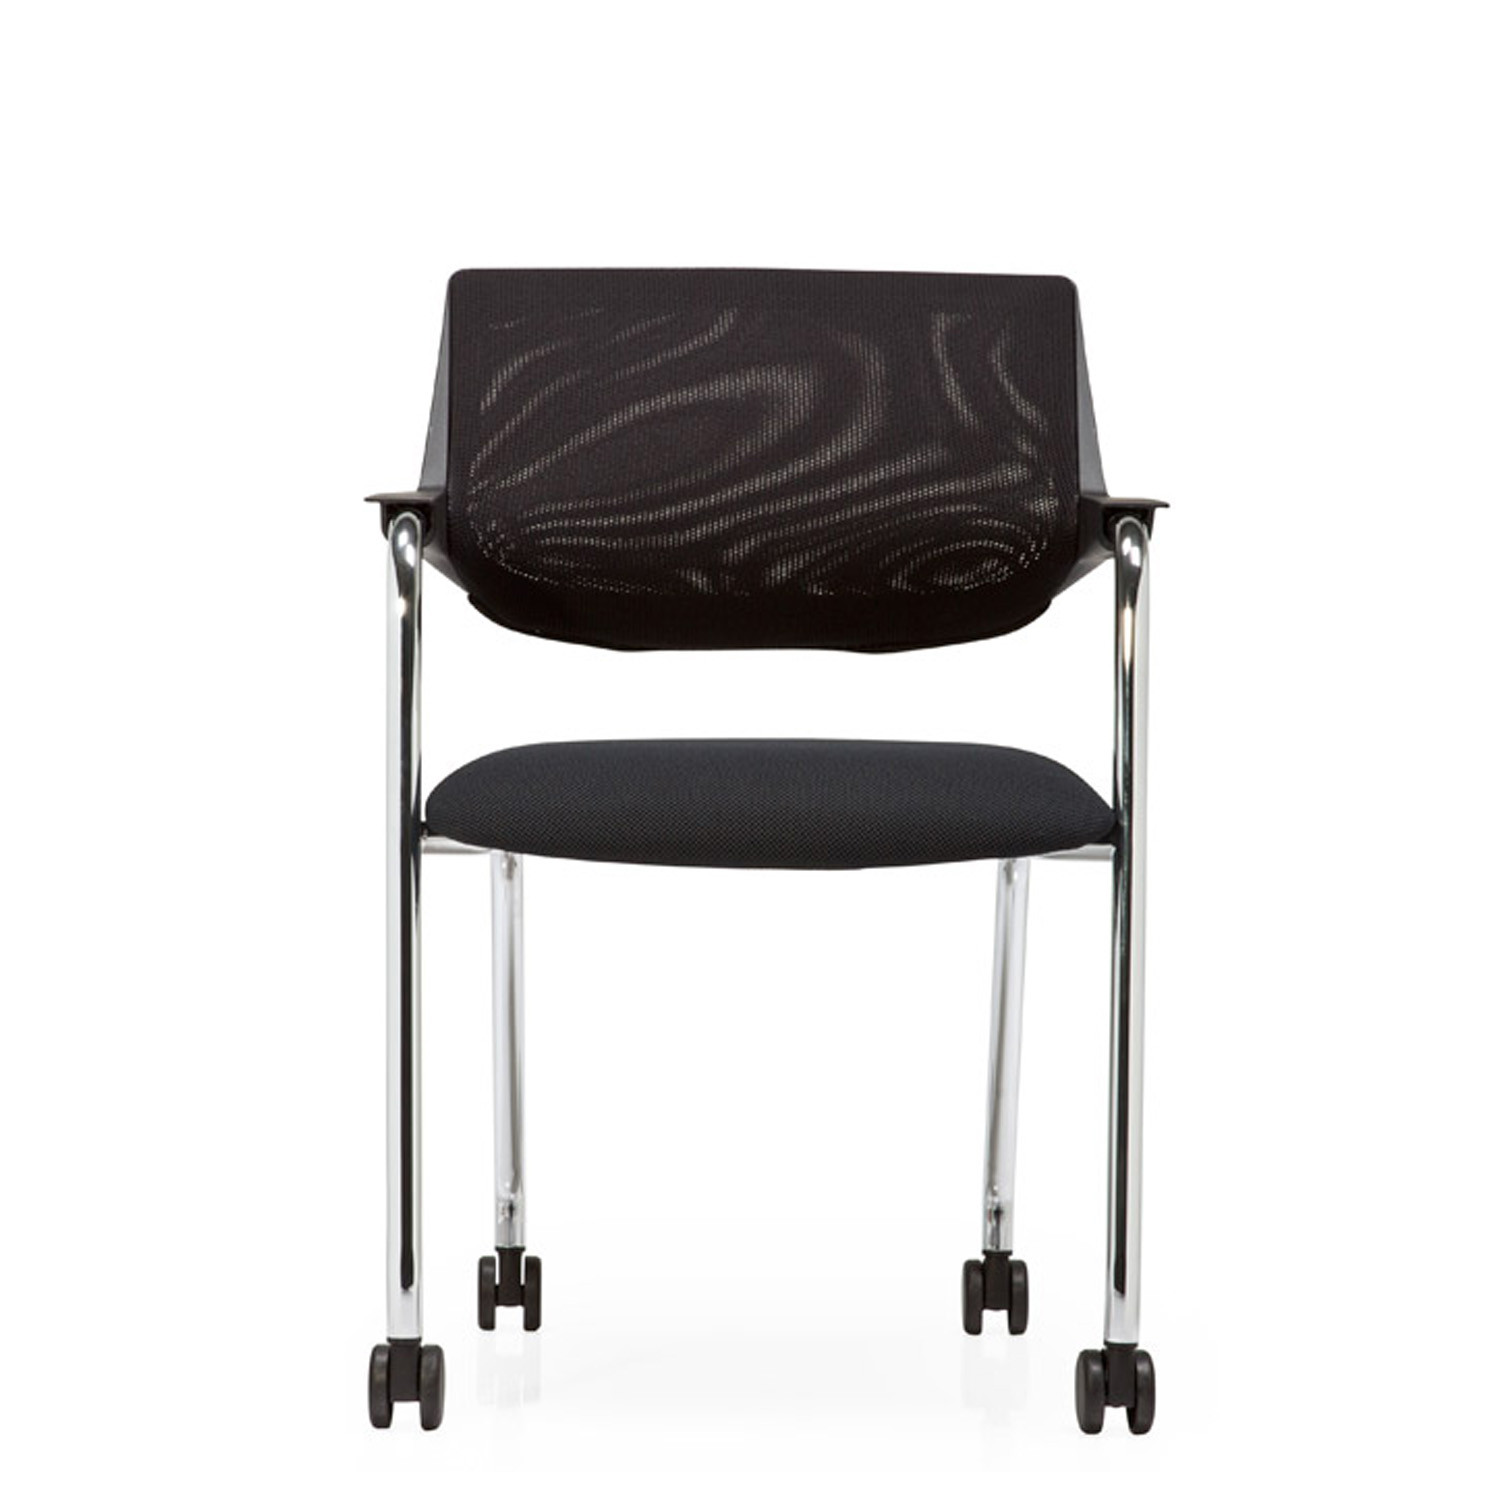 Gala Chair on Castor Wheels